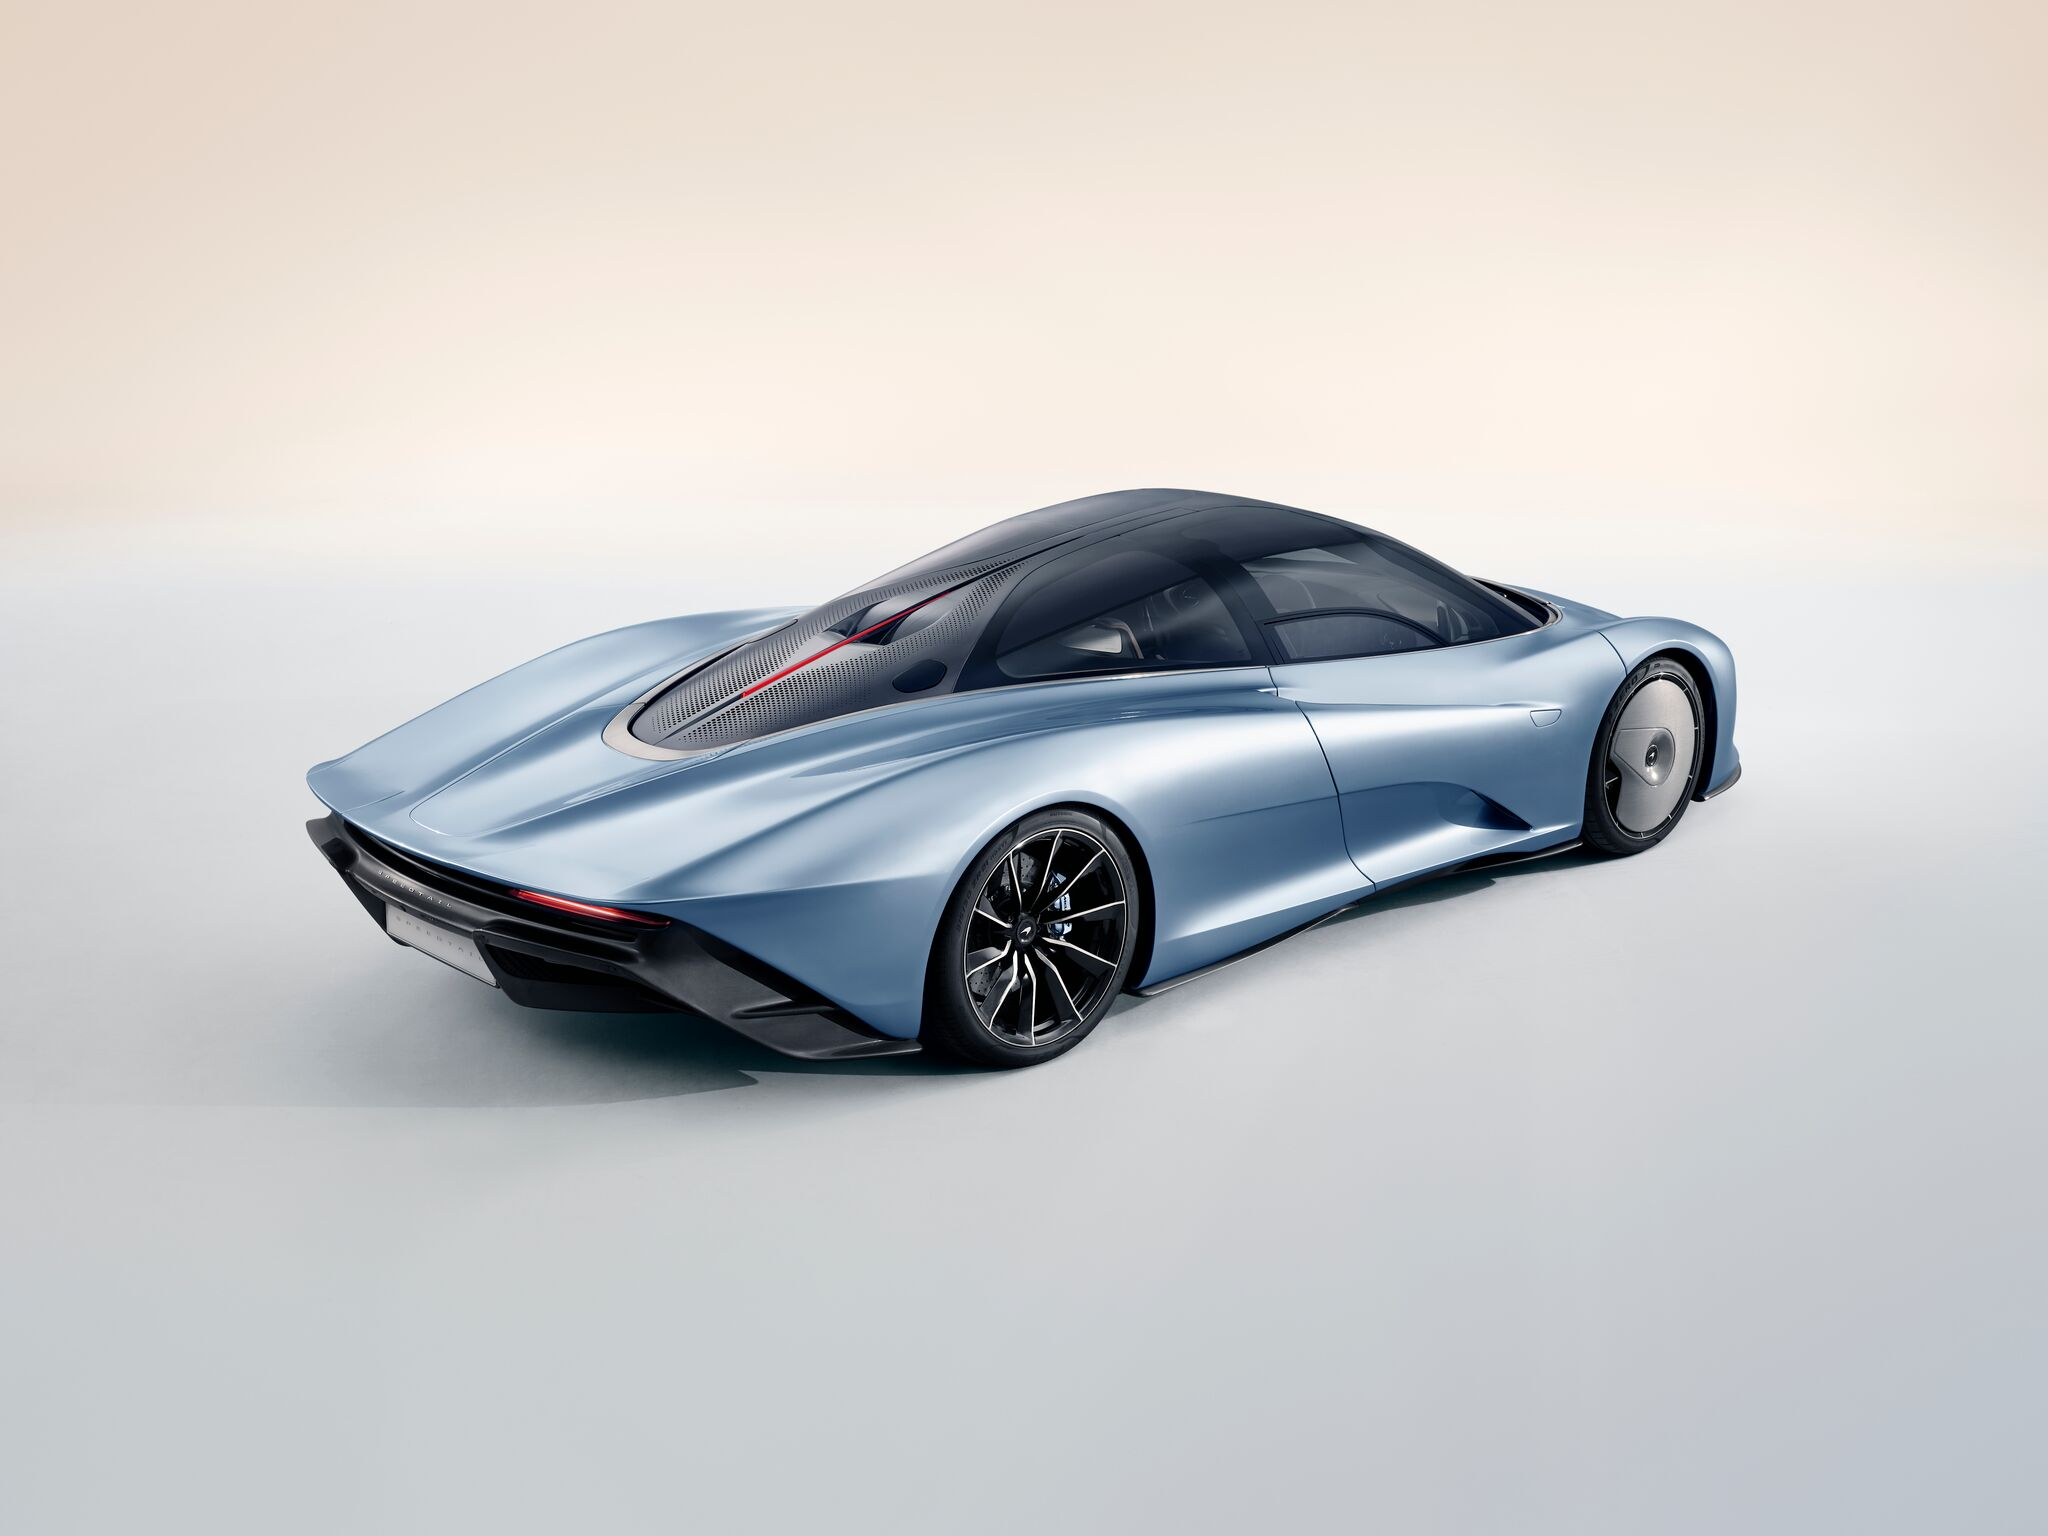 McLaren Speedtail The New 250mph Hypercar Is Already Sold Out 2048x1536